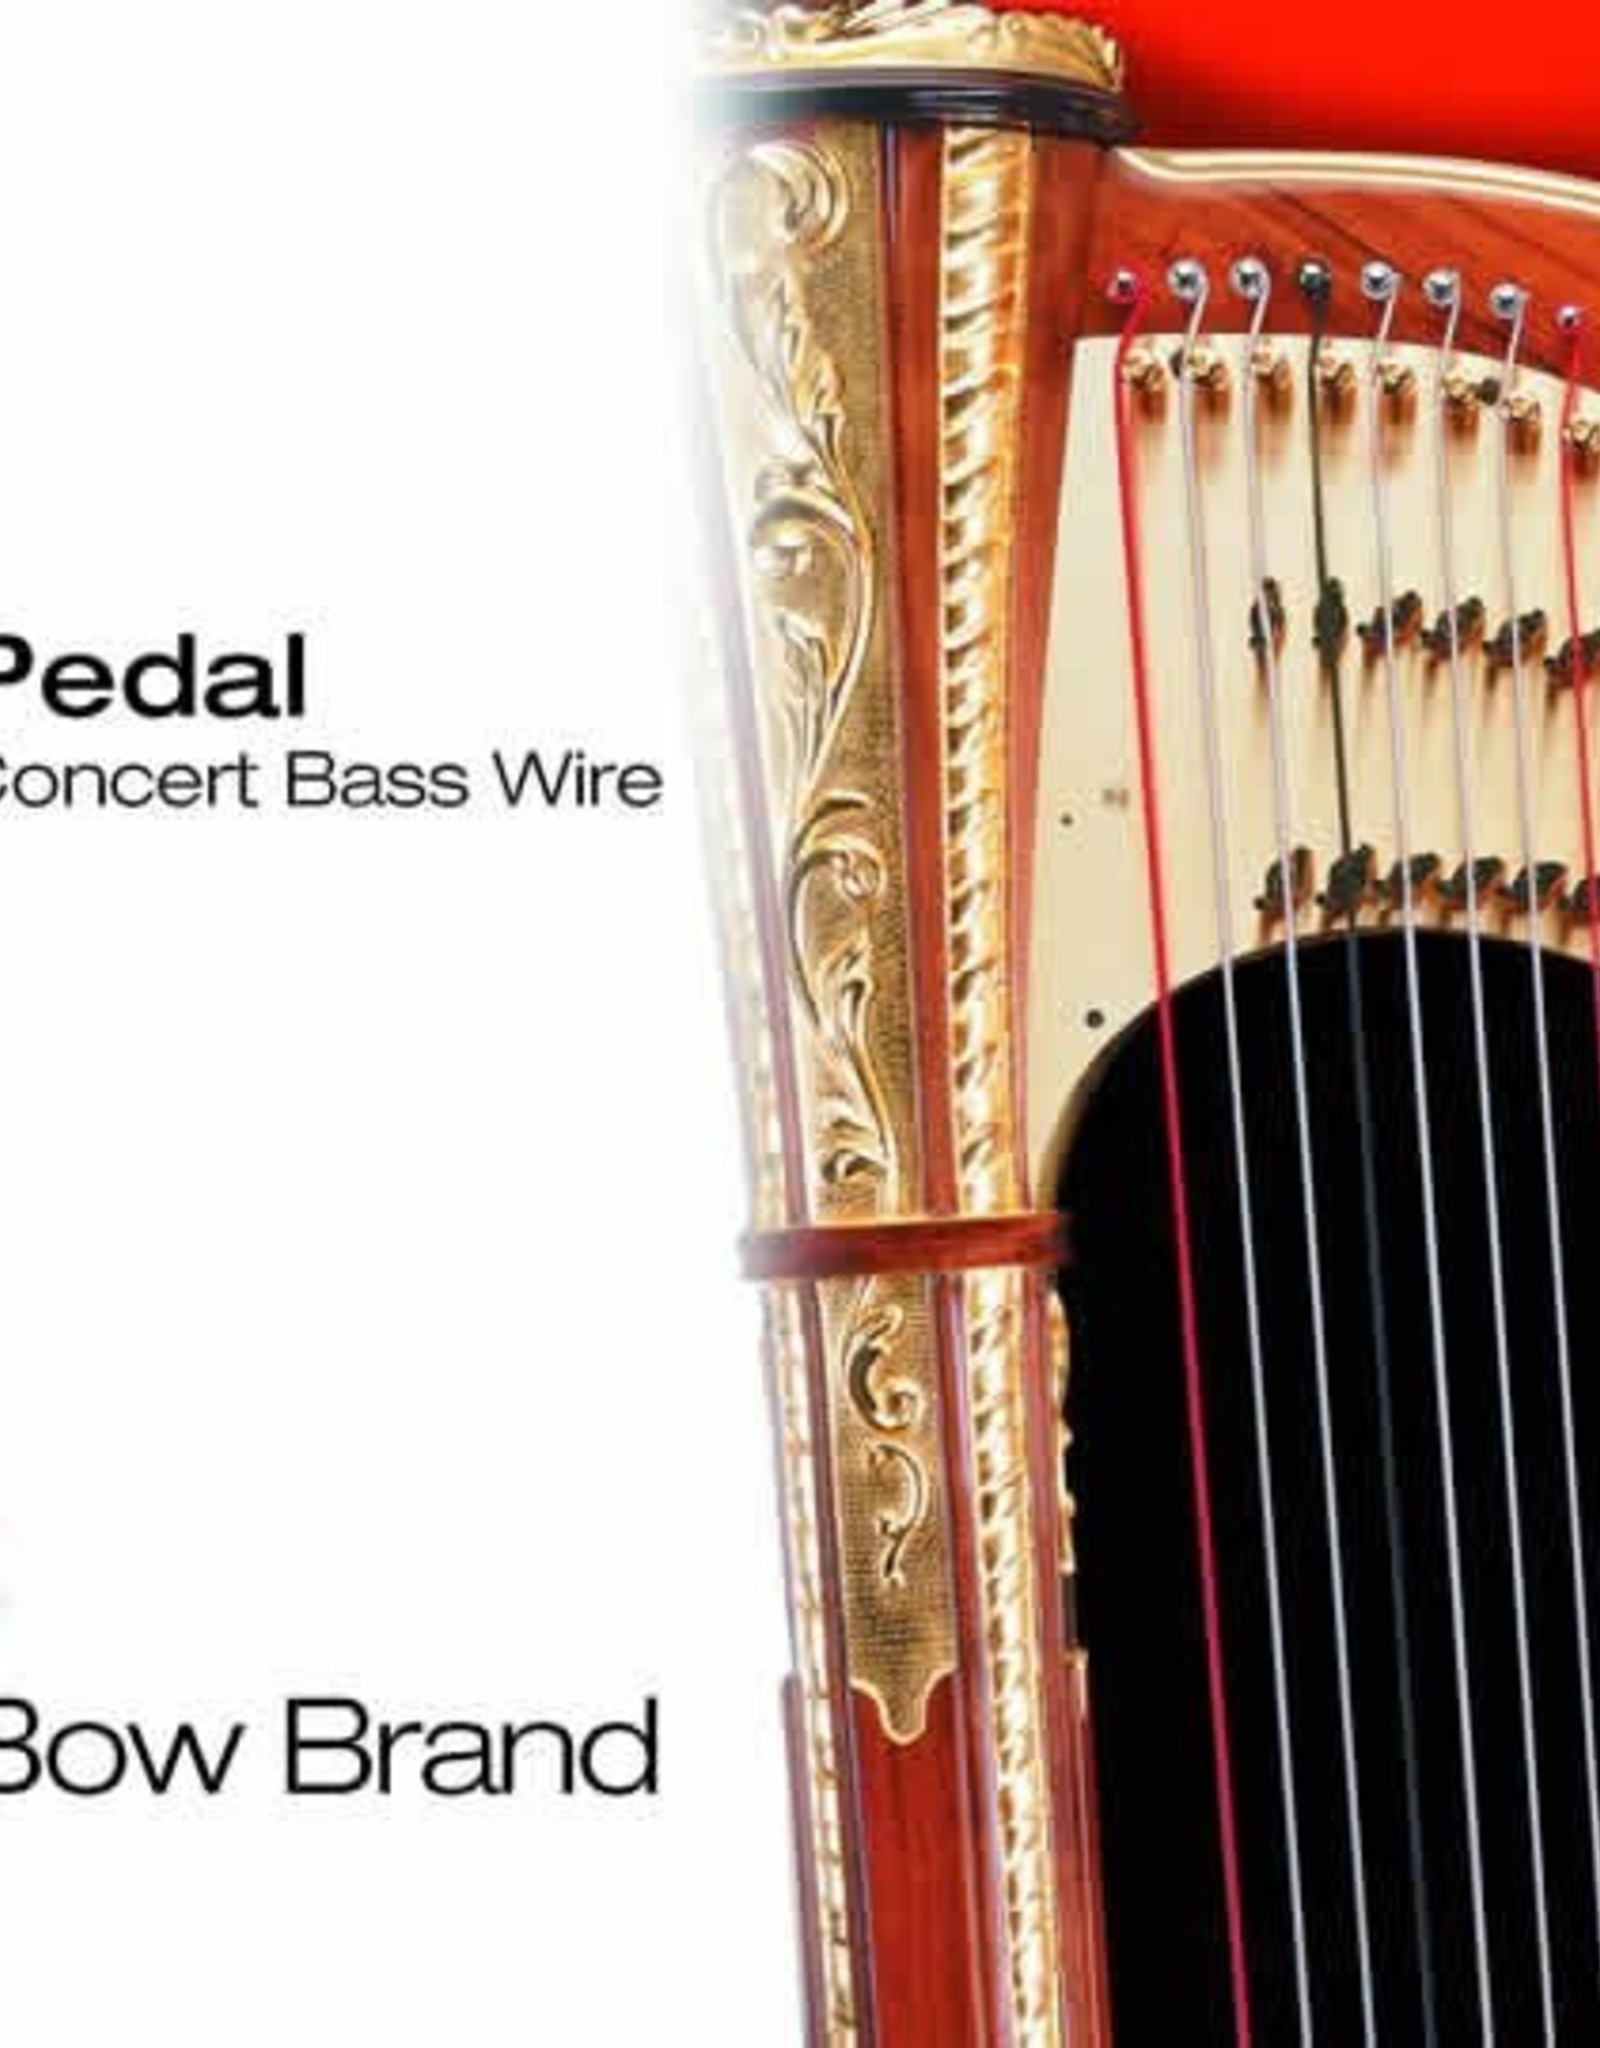 BOW BRAND  pedaal metaal - pedal WIRE 35/5 fa